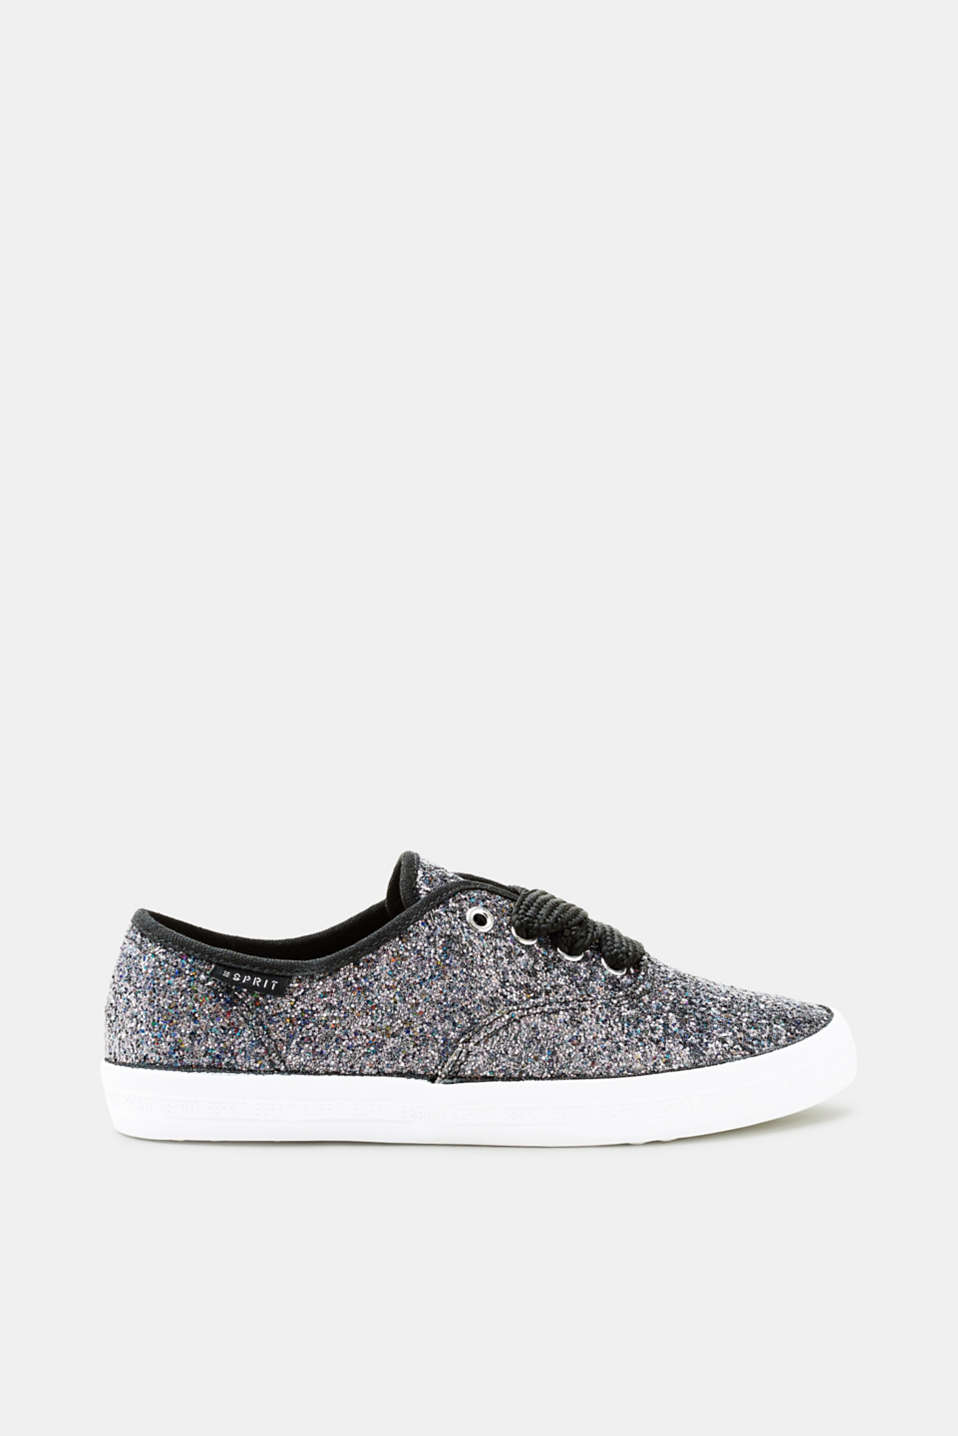 Esprit - Glitter trainers with distinctive shoelaces